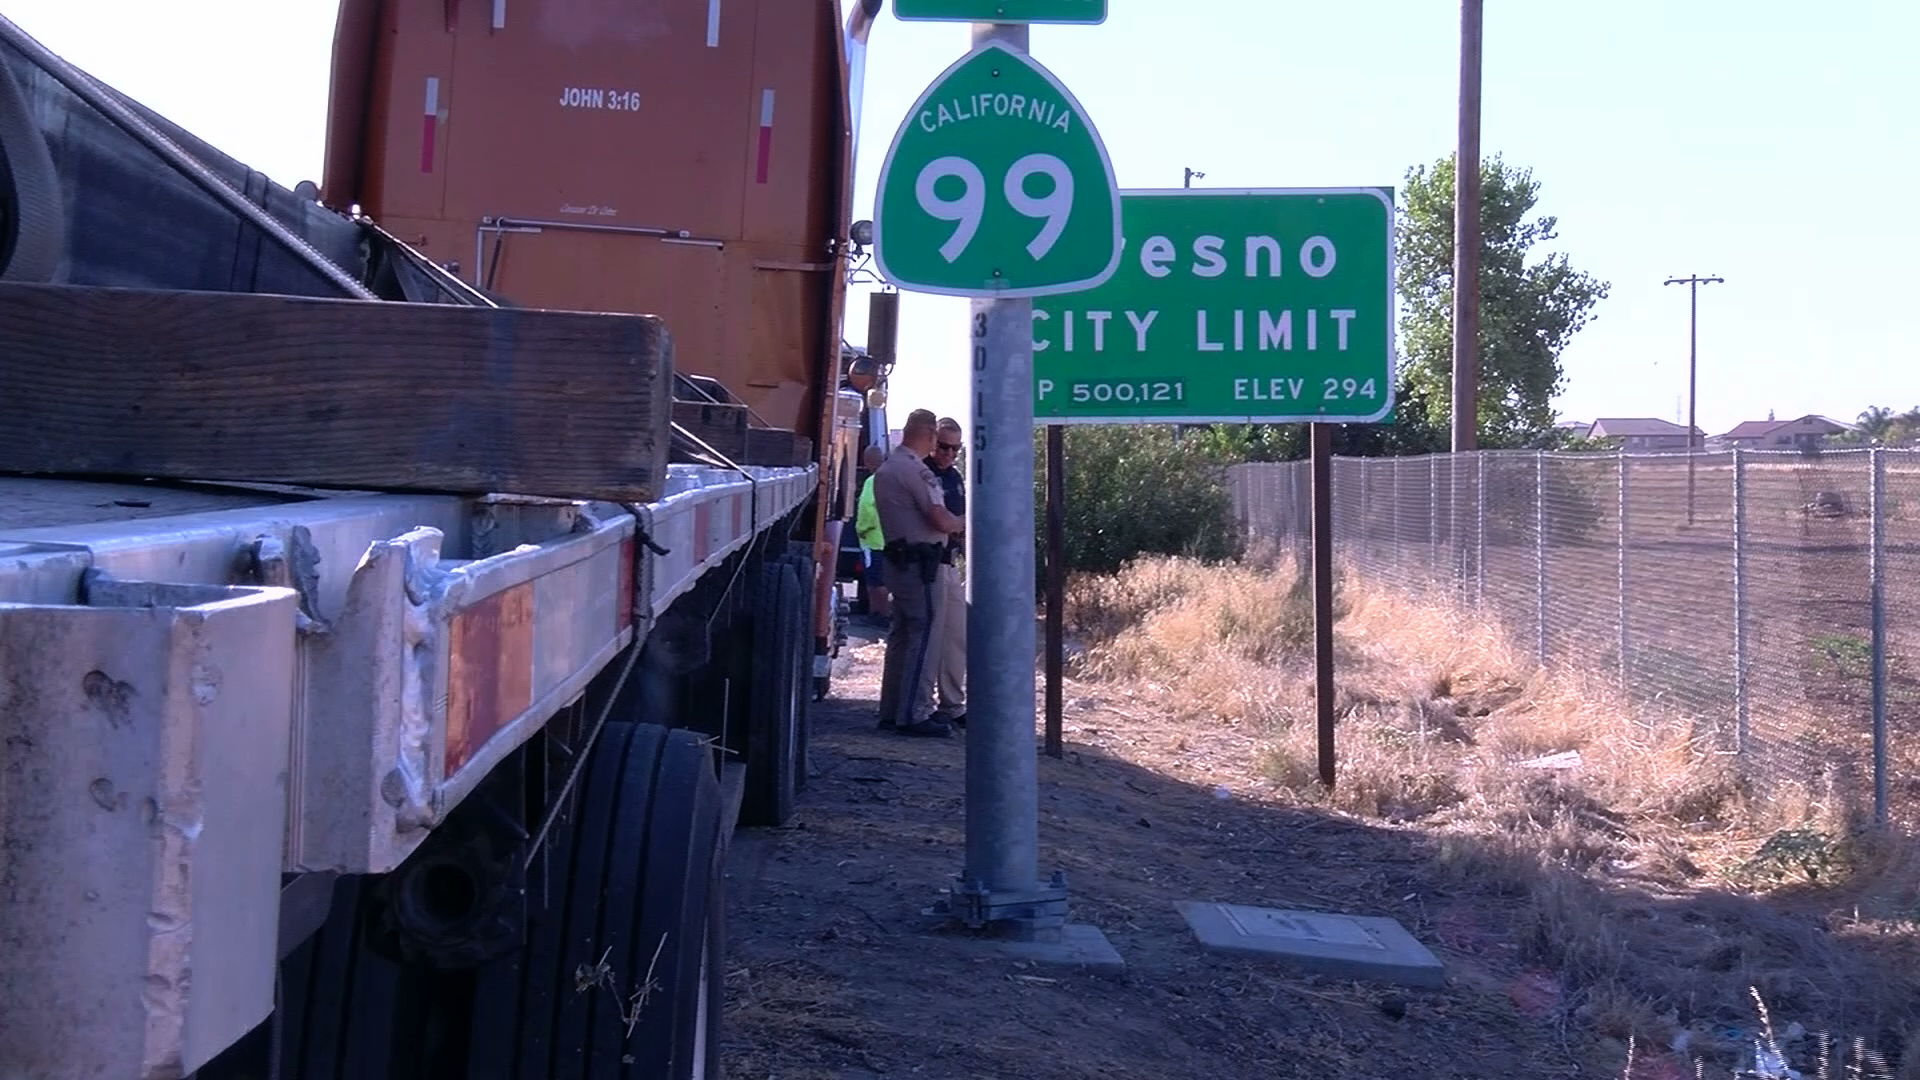 Officers investigate the scene in Fresno where one big rig driver stabbed two others on Aug. 28, 2019. (Credit: KGPE/KSEE via CNN)